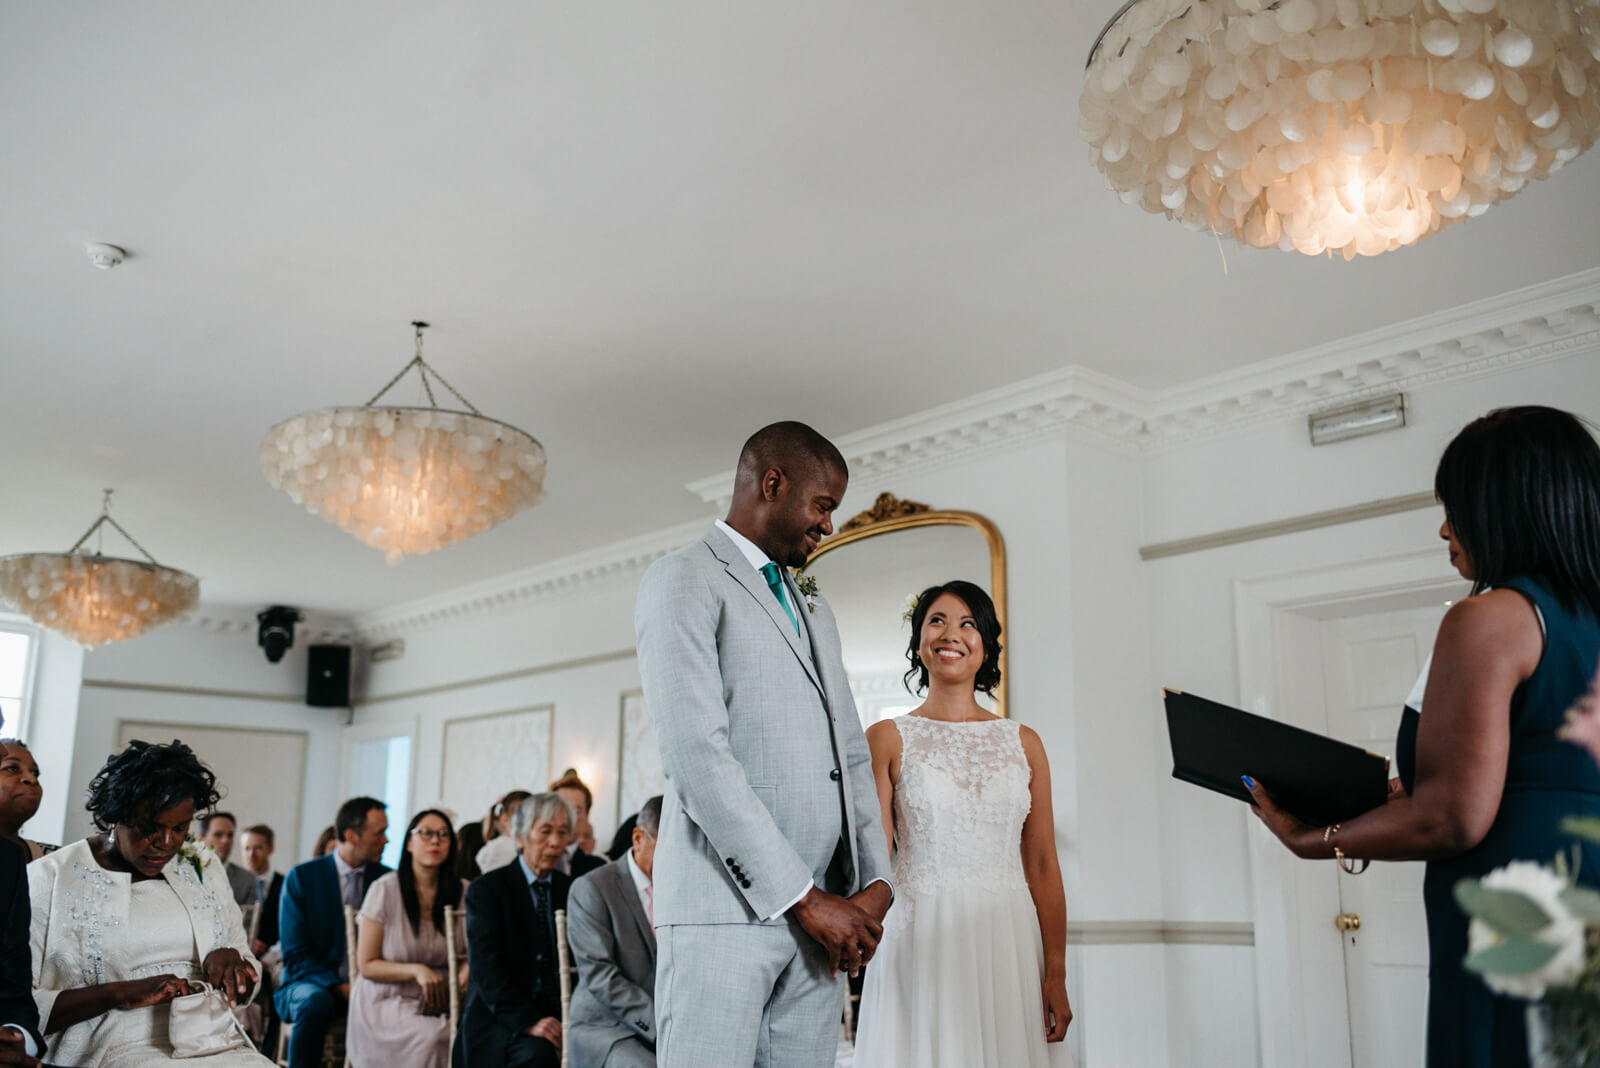 London Bride and groom exchange vows at Belair House